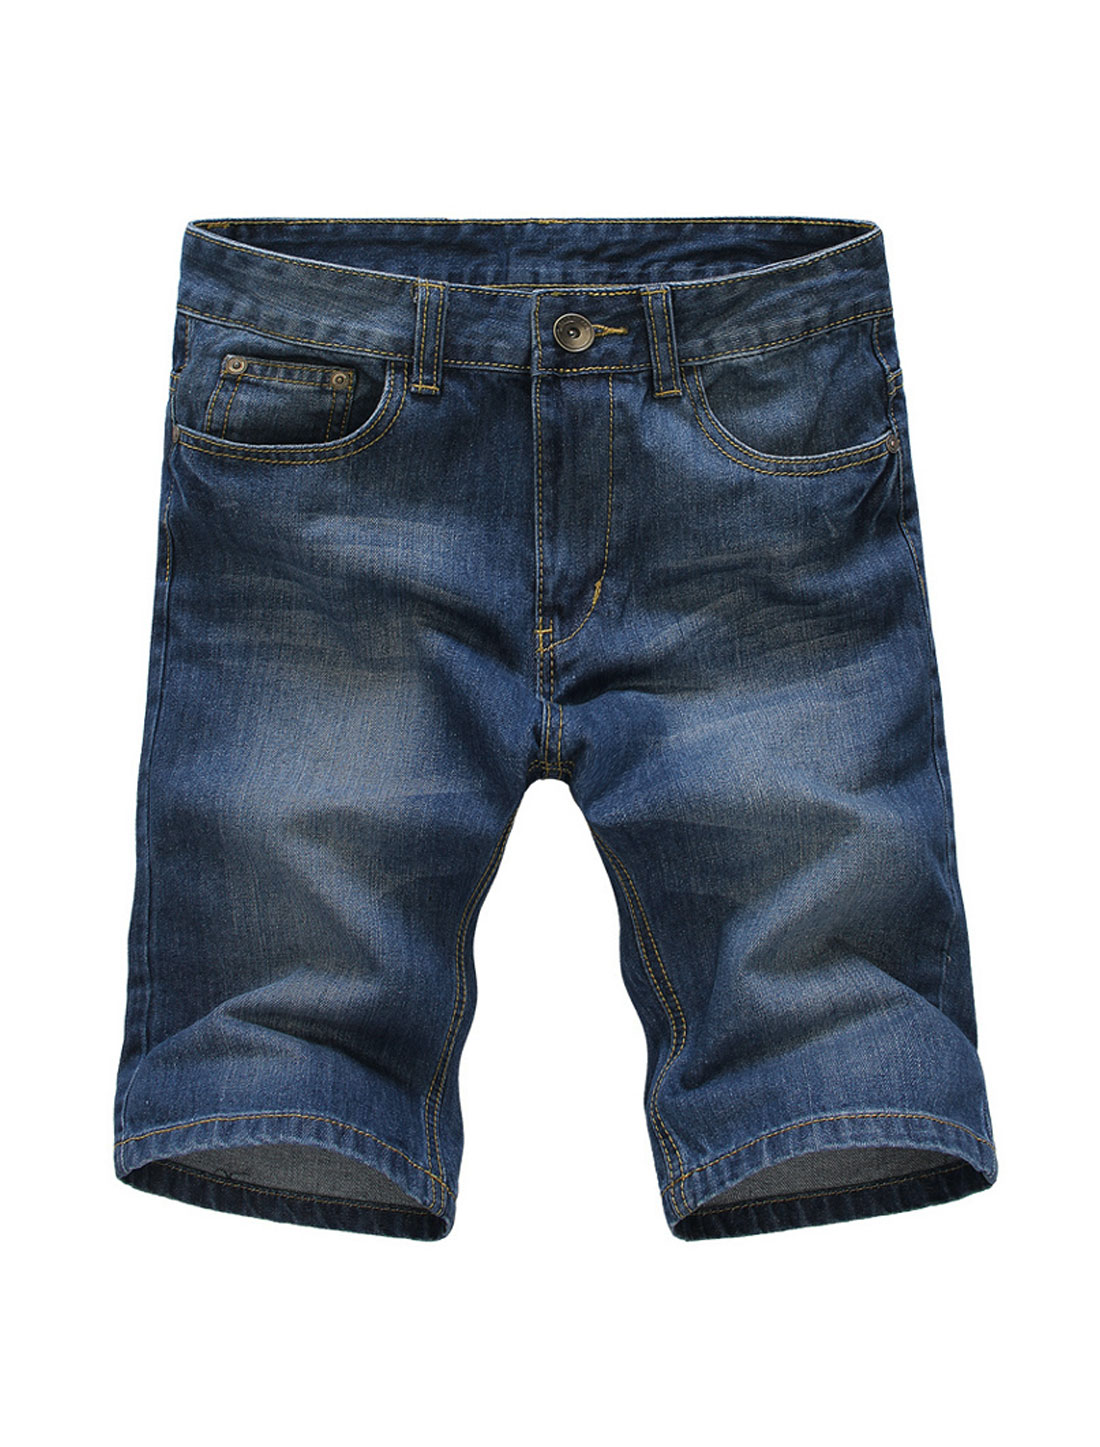 Men's Front Hip Pockets Zip Fly Mid Rise Jeans Shorts Dark Blue W30